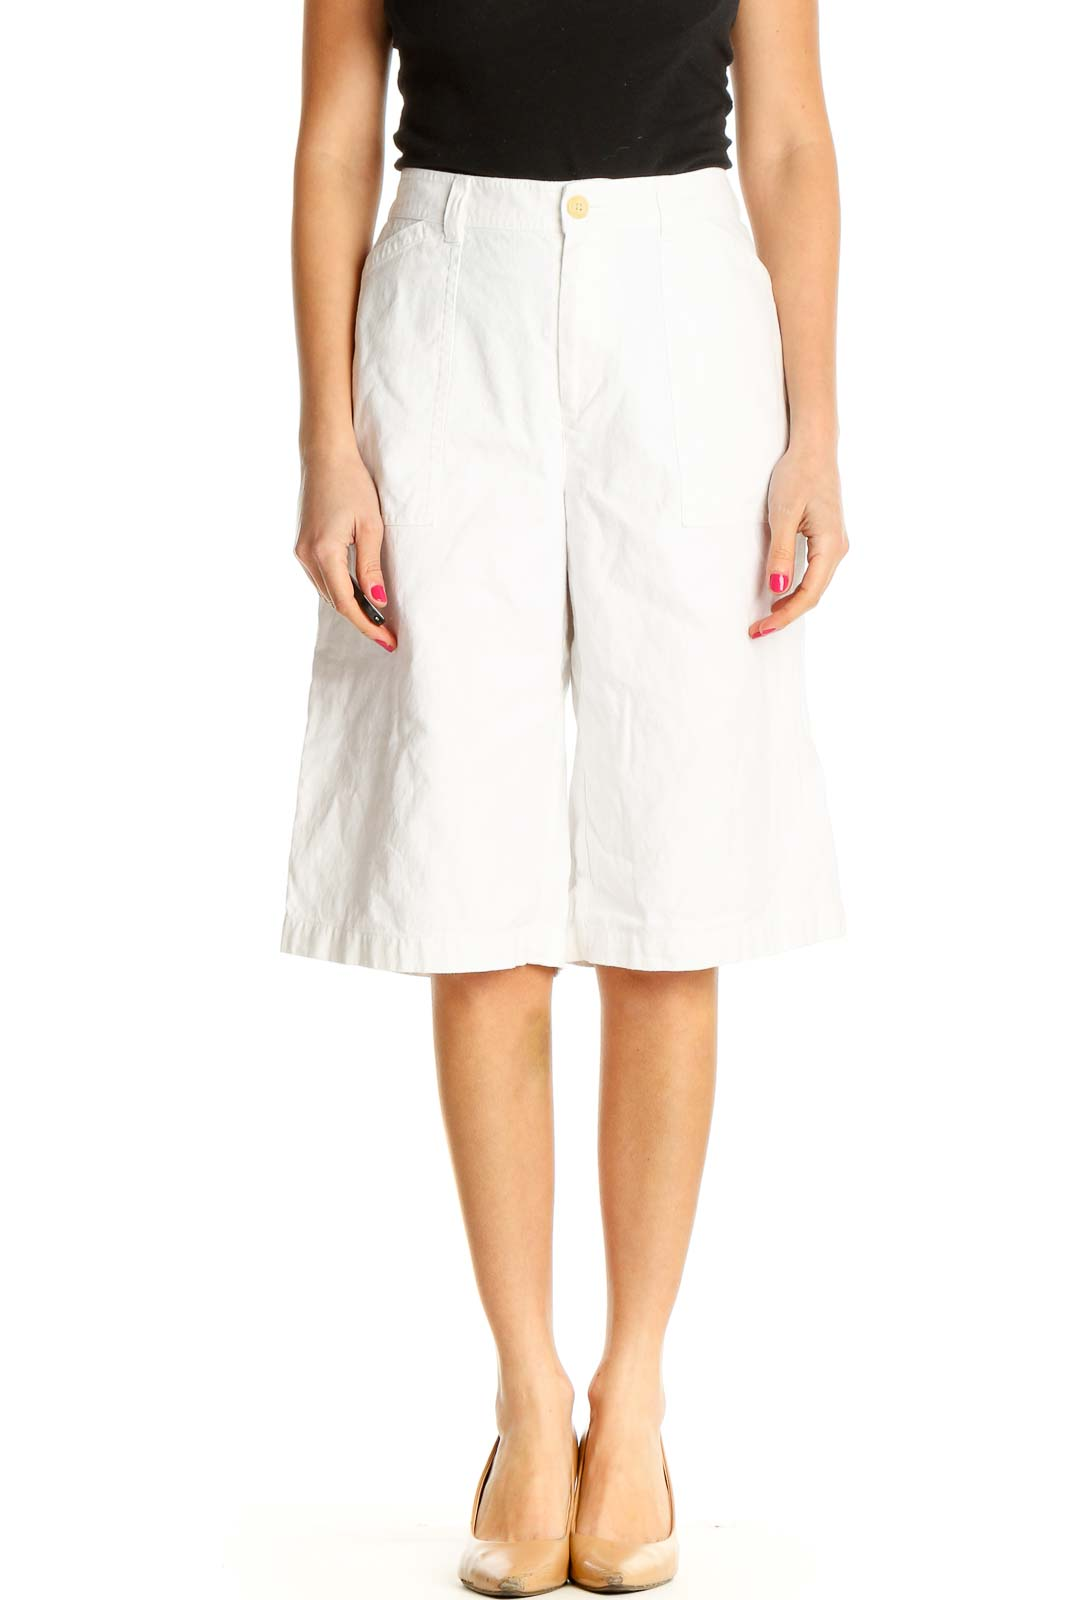 White Solid Casual Shorts Front